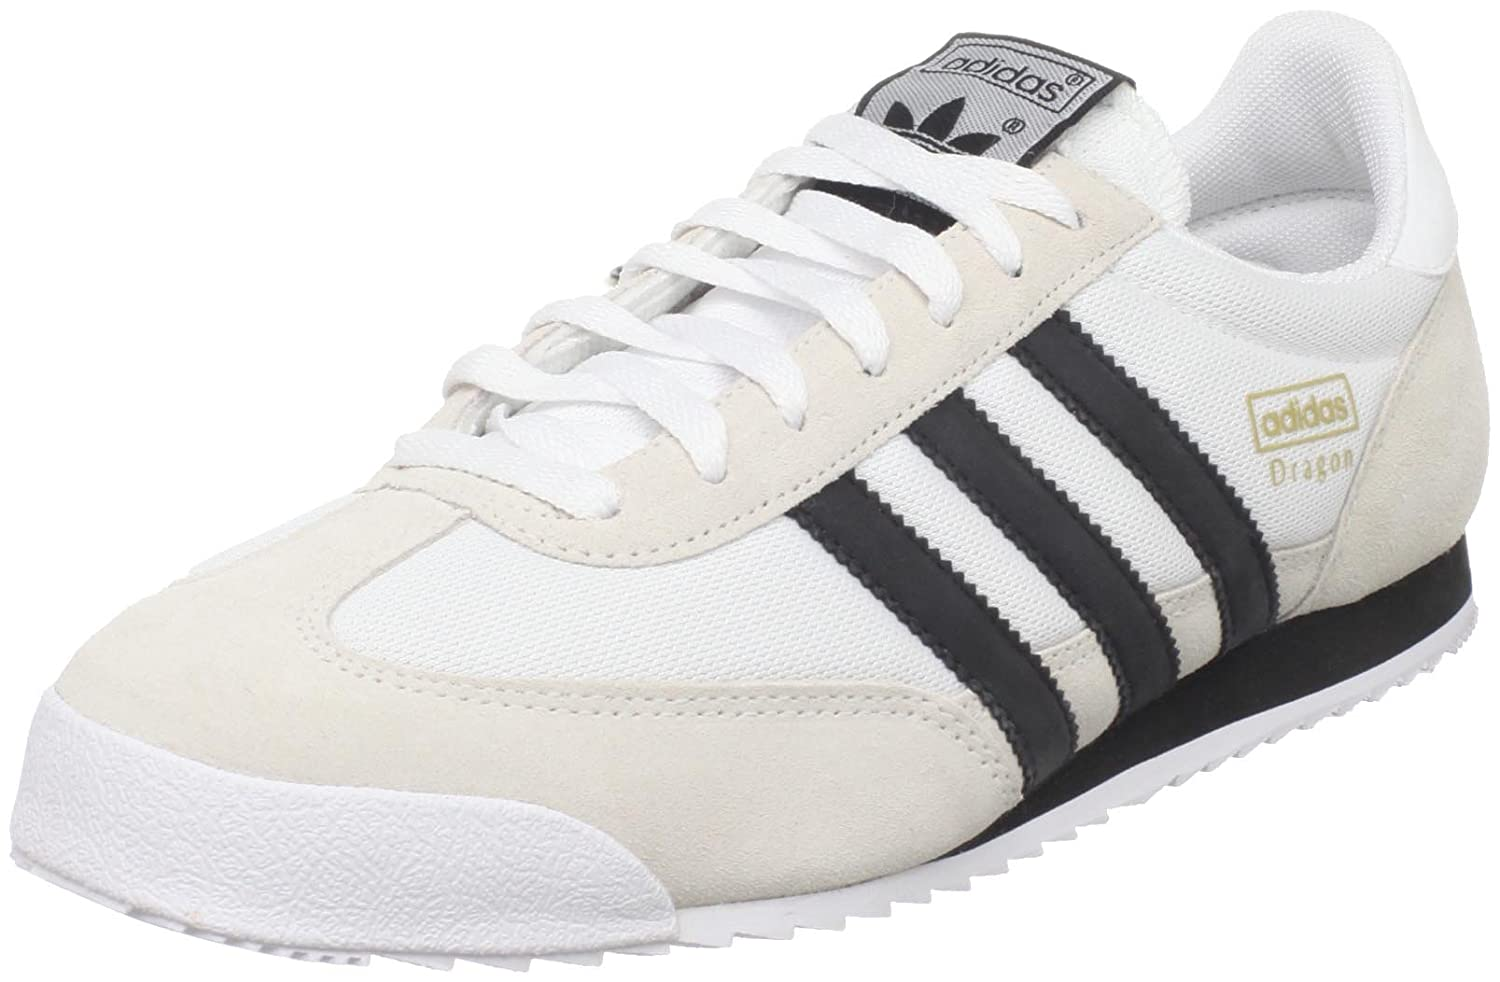 adidas originals dragon mens sneaker